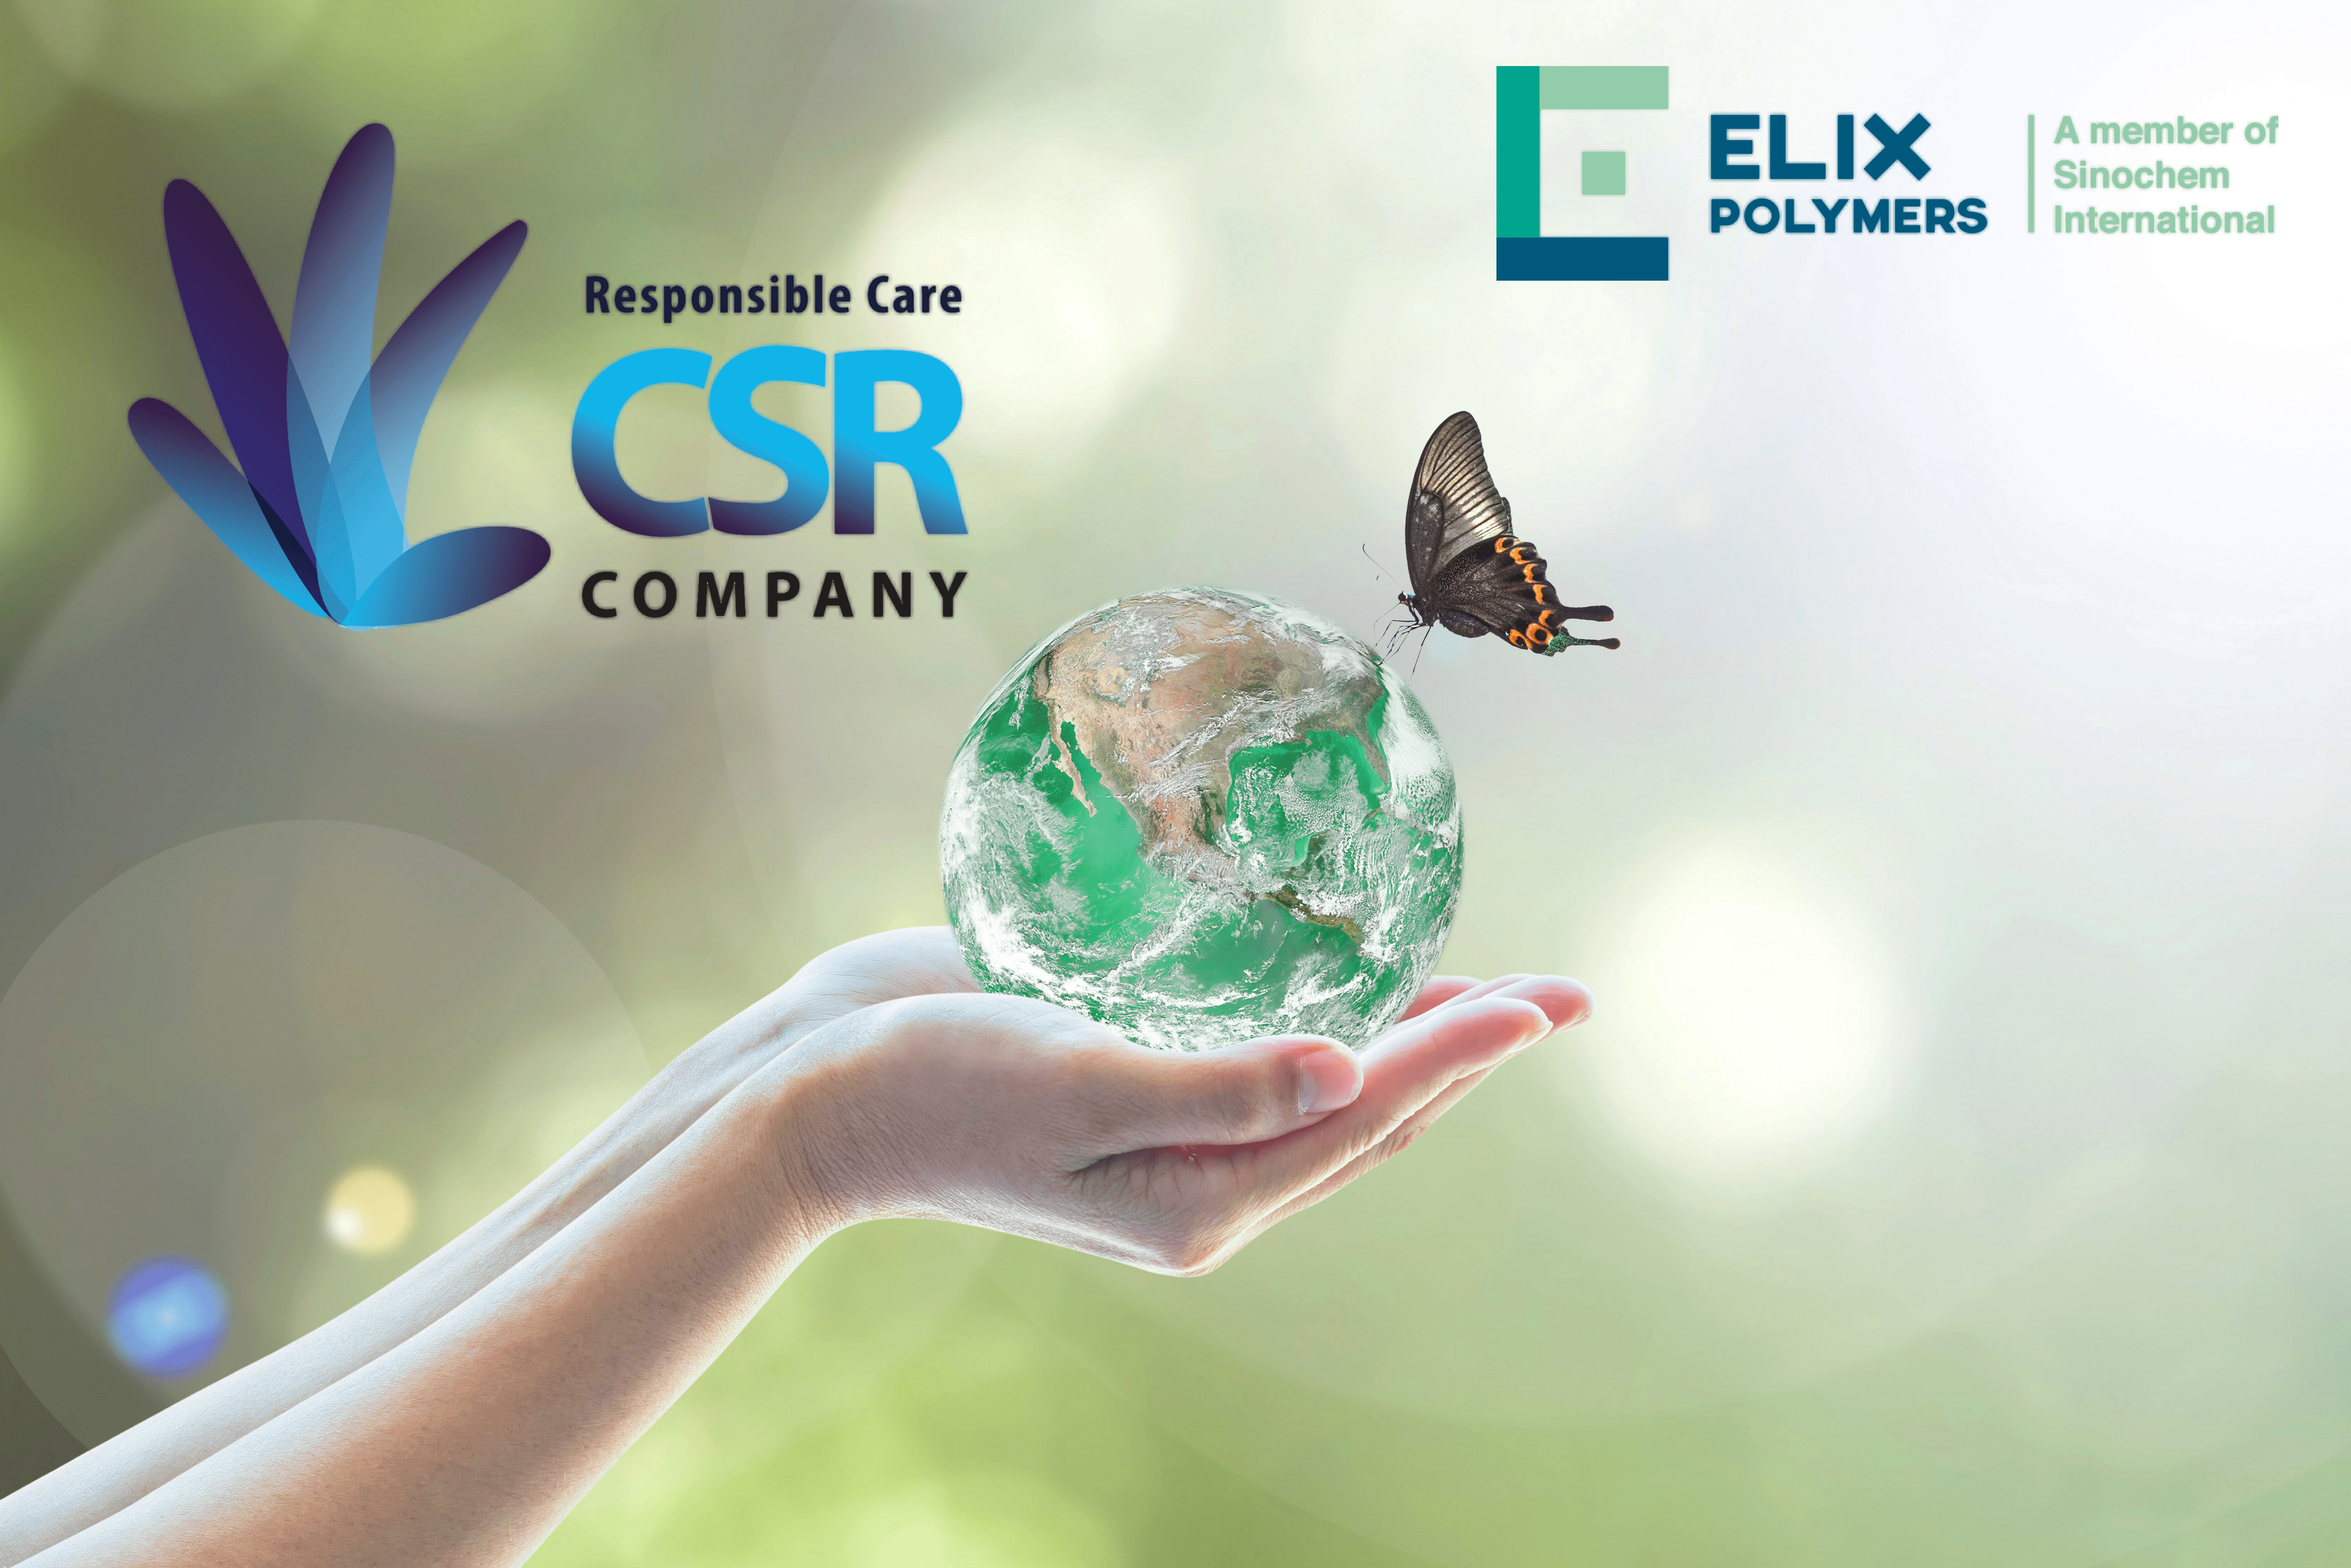 ELIX Polymers renews CSR Responsible Care Company certification